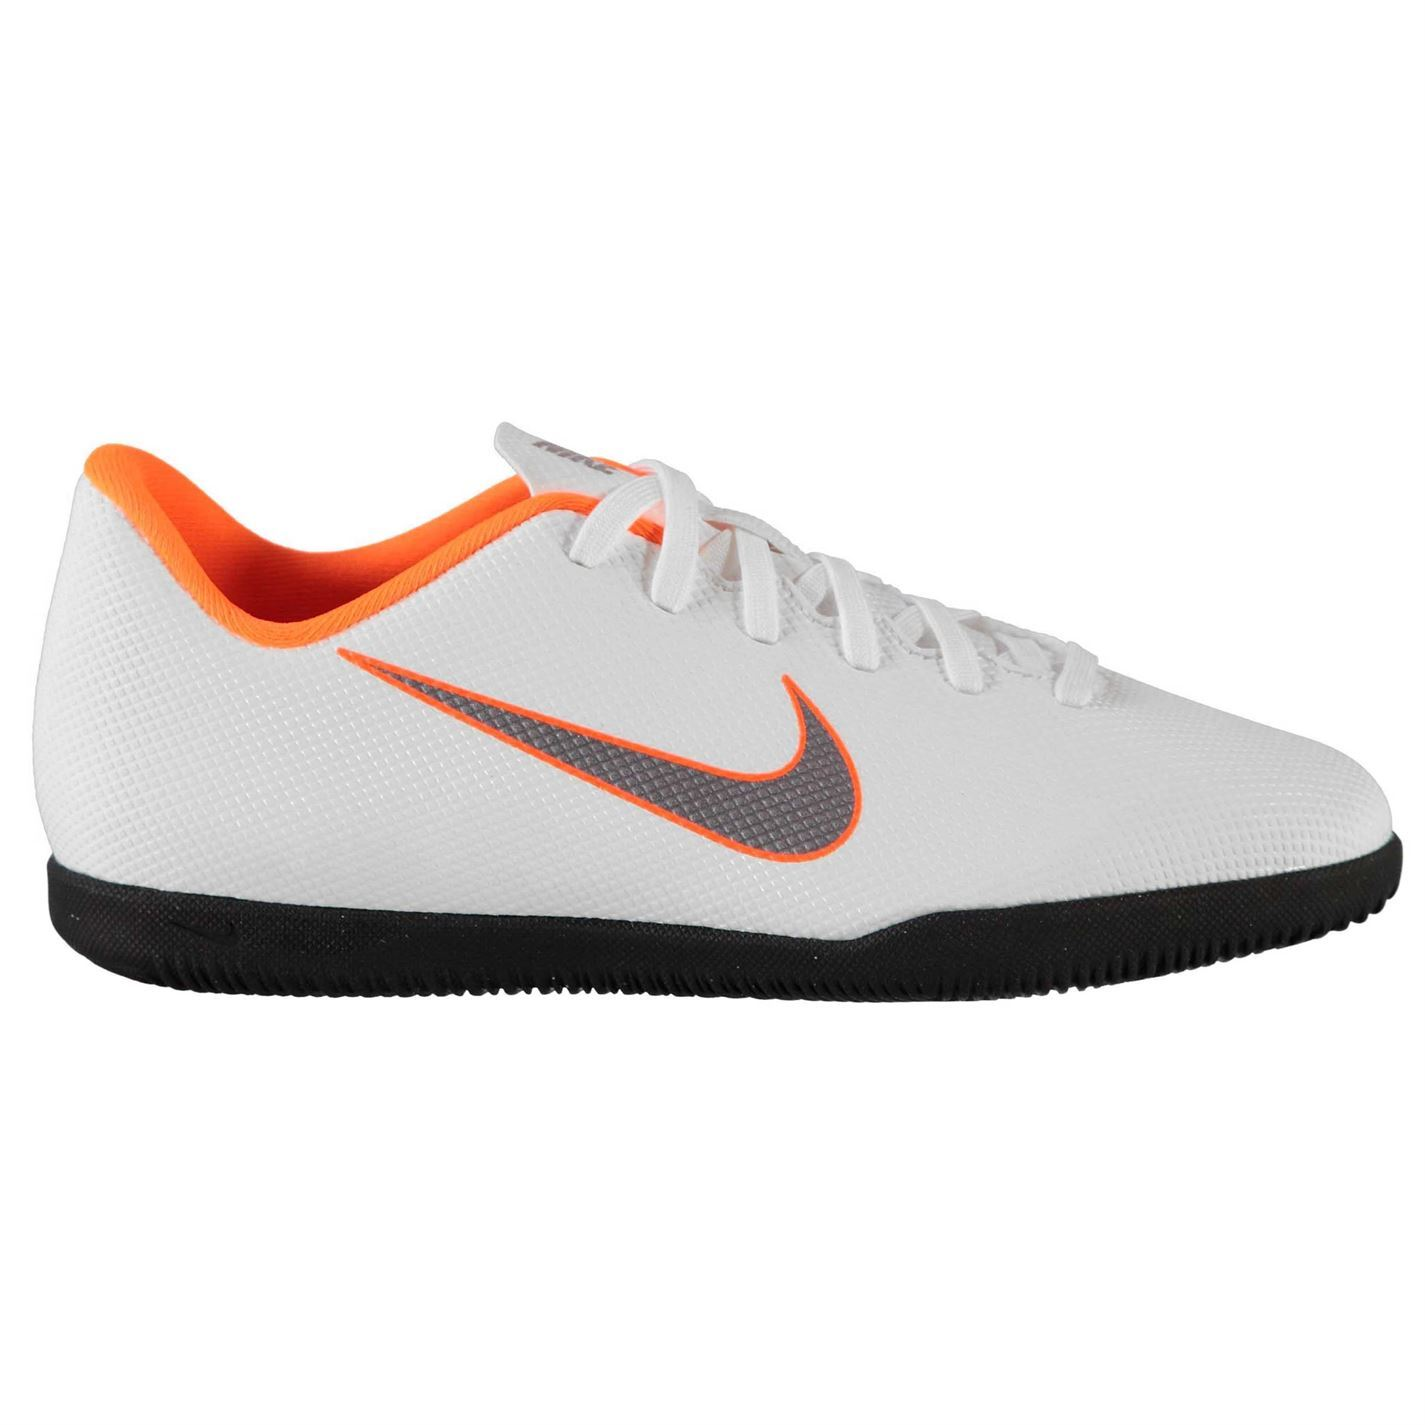 hot sales ec9a6 4d568 Soccer Club Indoor Vapor Juniors Mercurial Football Trainers Nike qE0tpwq